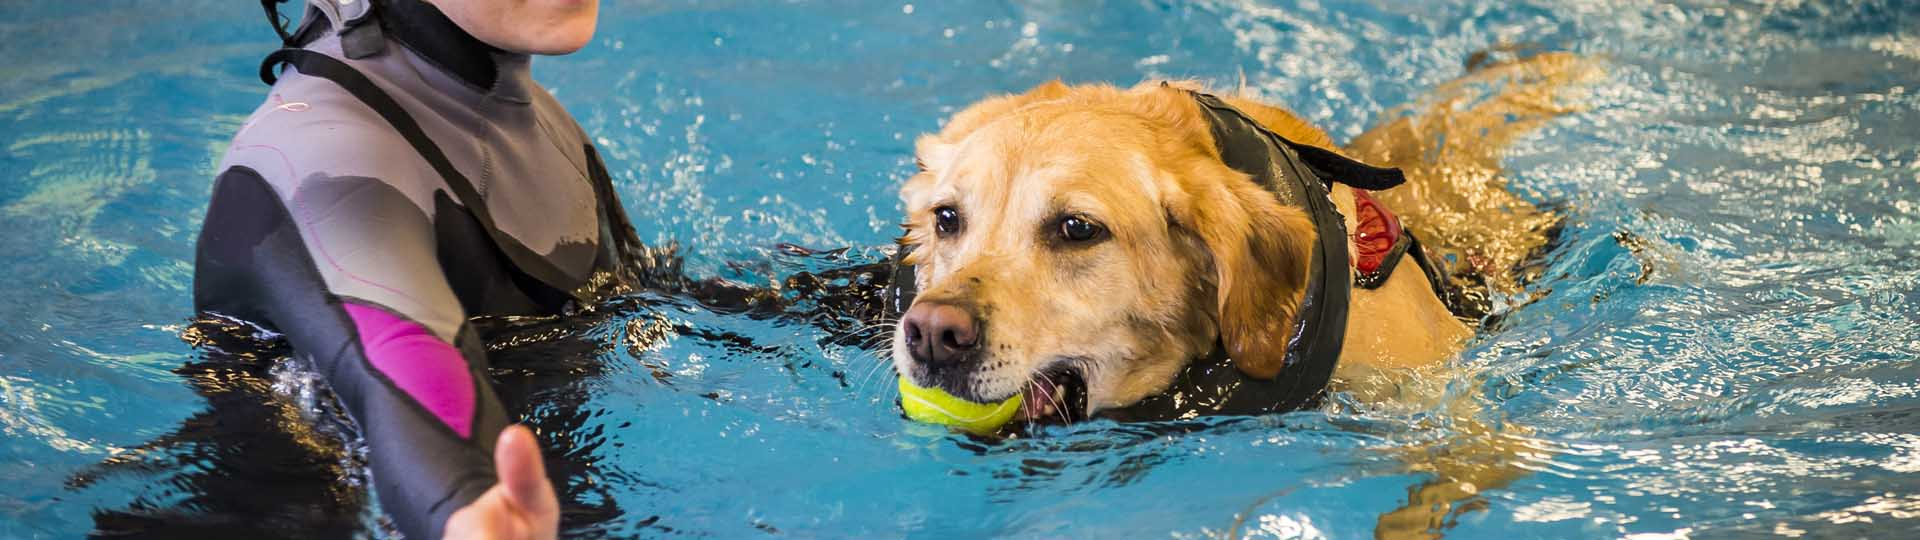 Golden Retriever having hydrotherapy in the pool